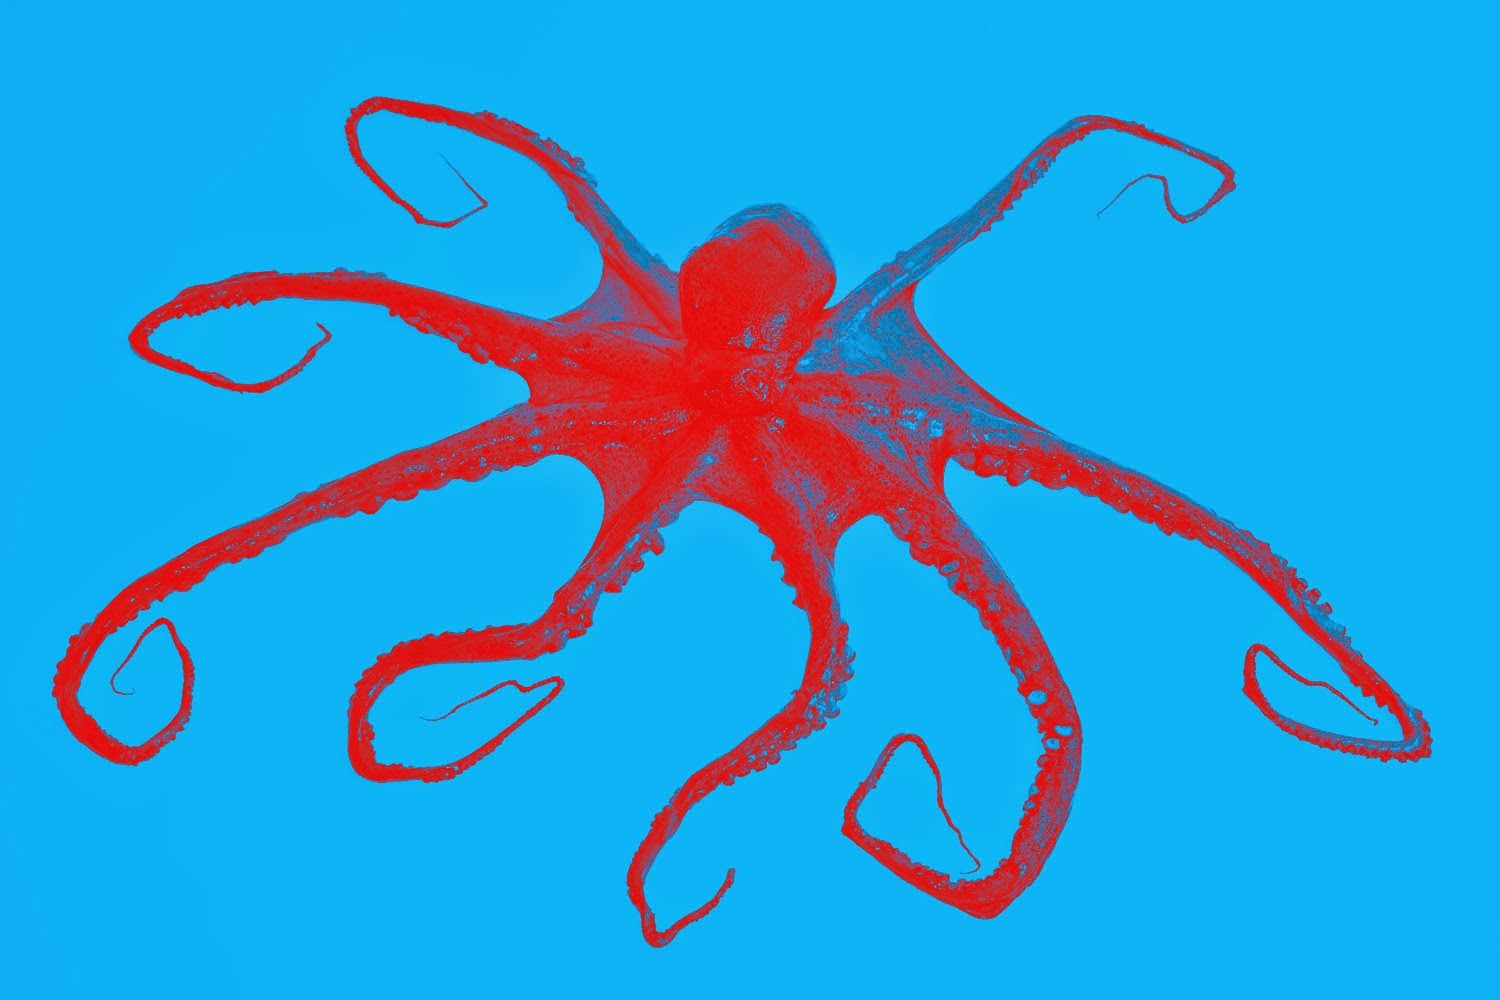 Octored